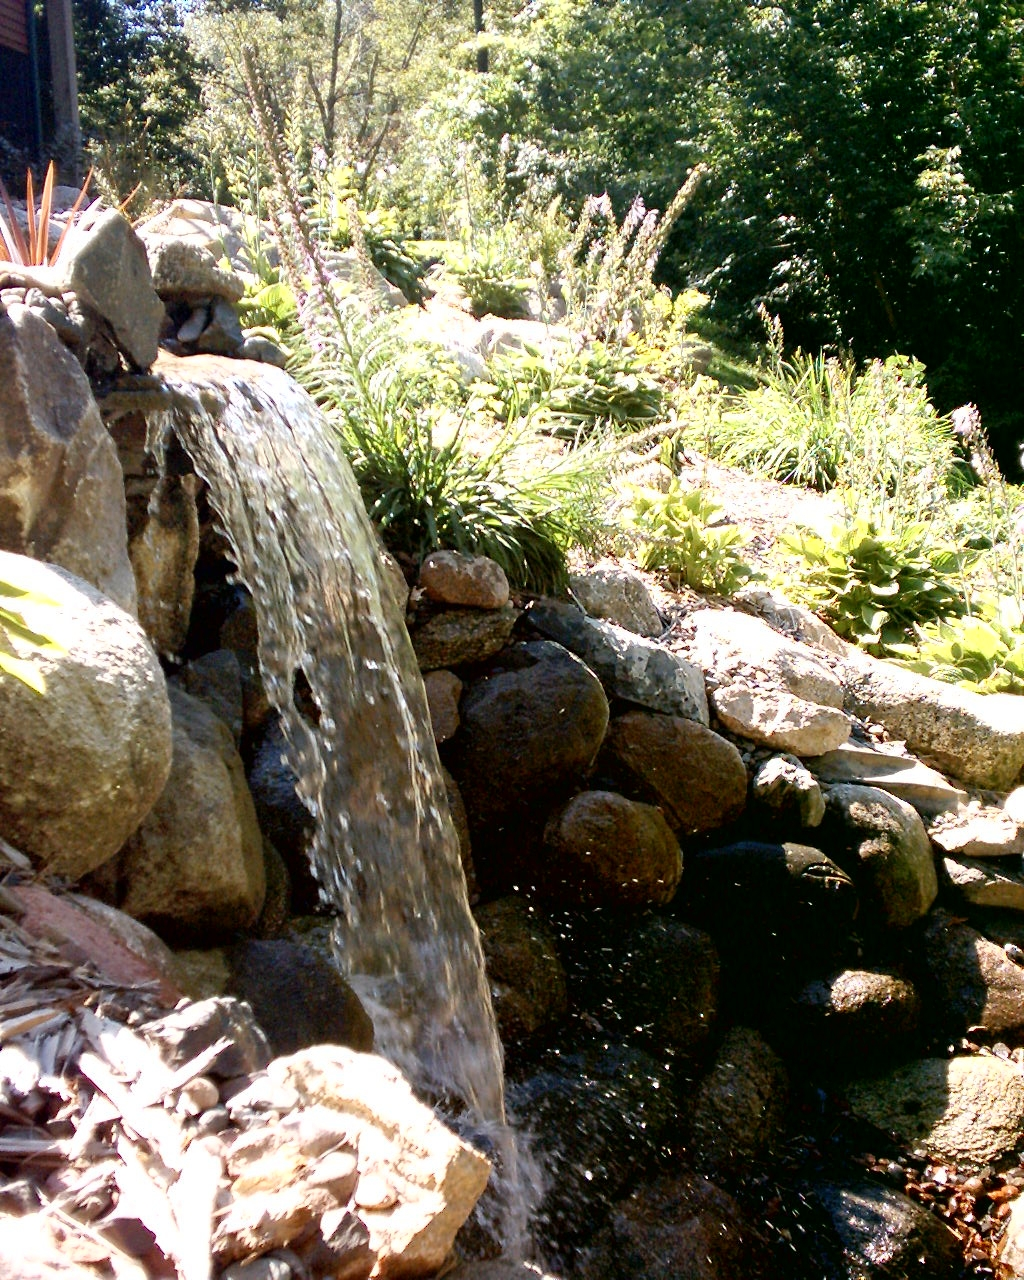 Landscaping Ponds And Waterfalls: Ponds And Waterfalls